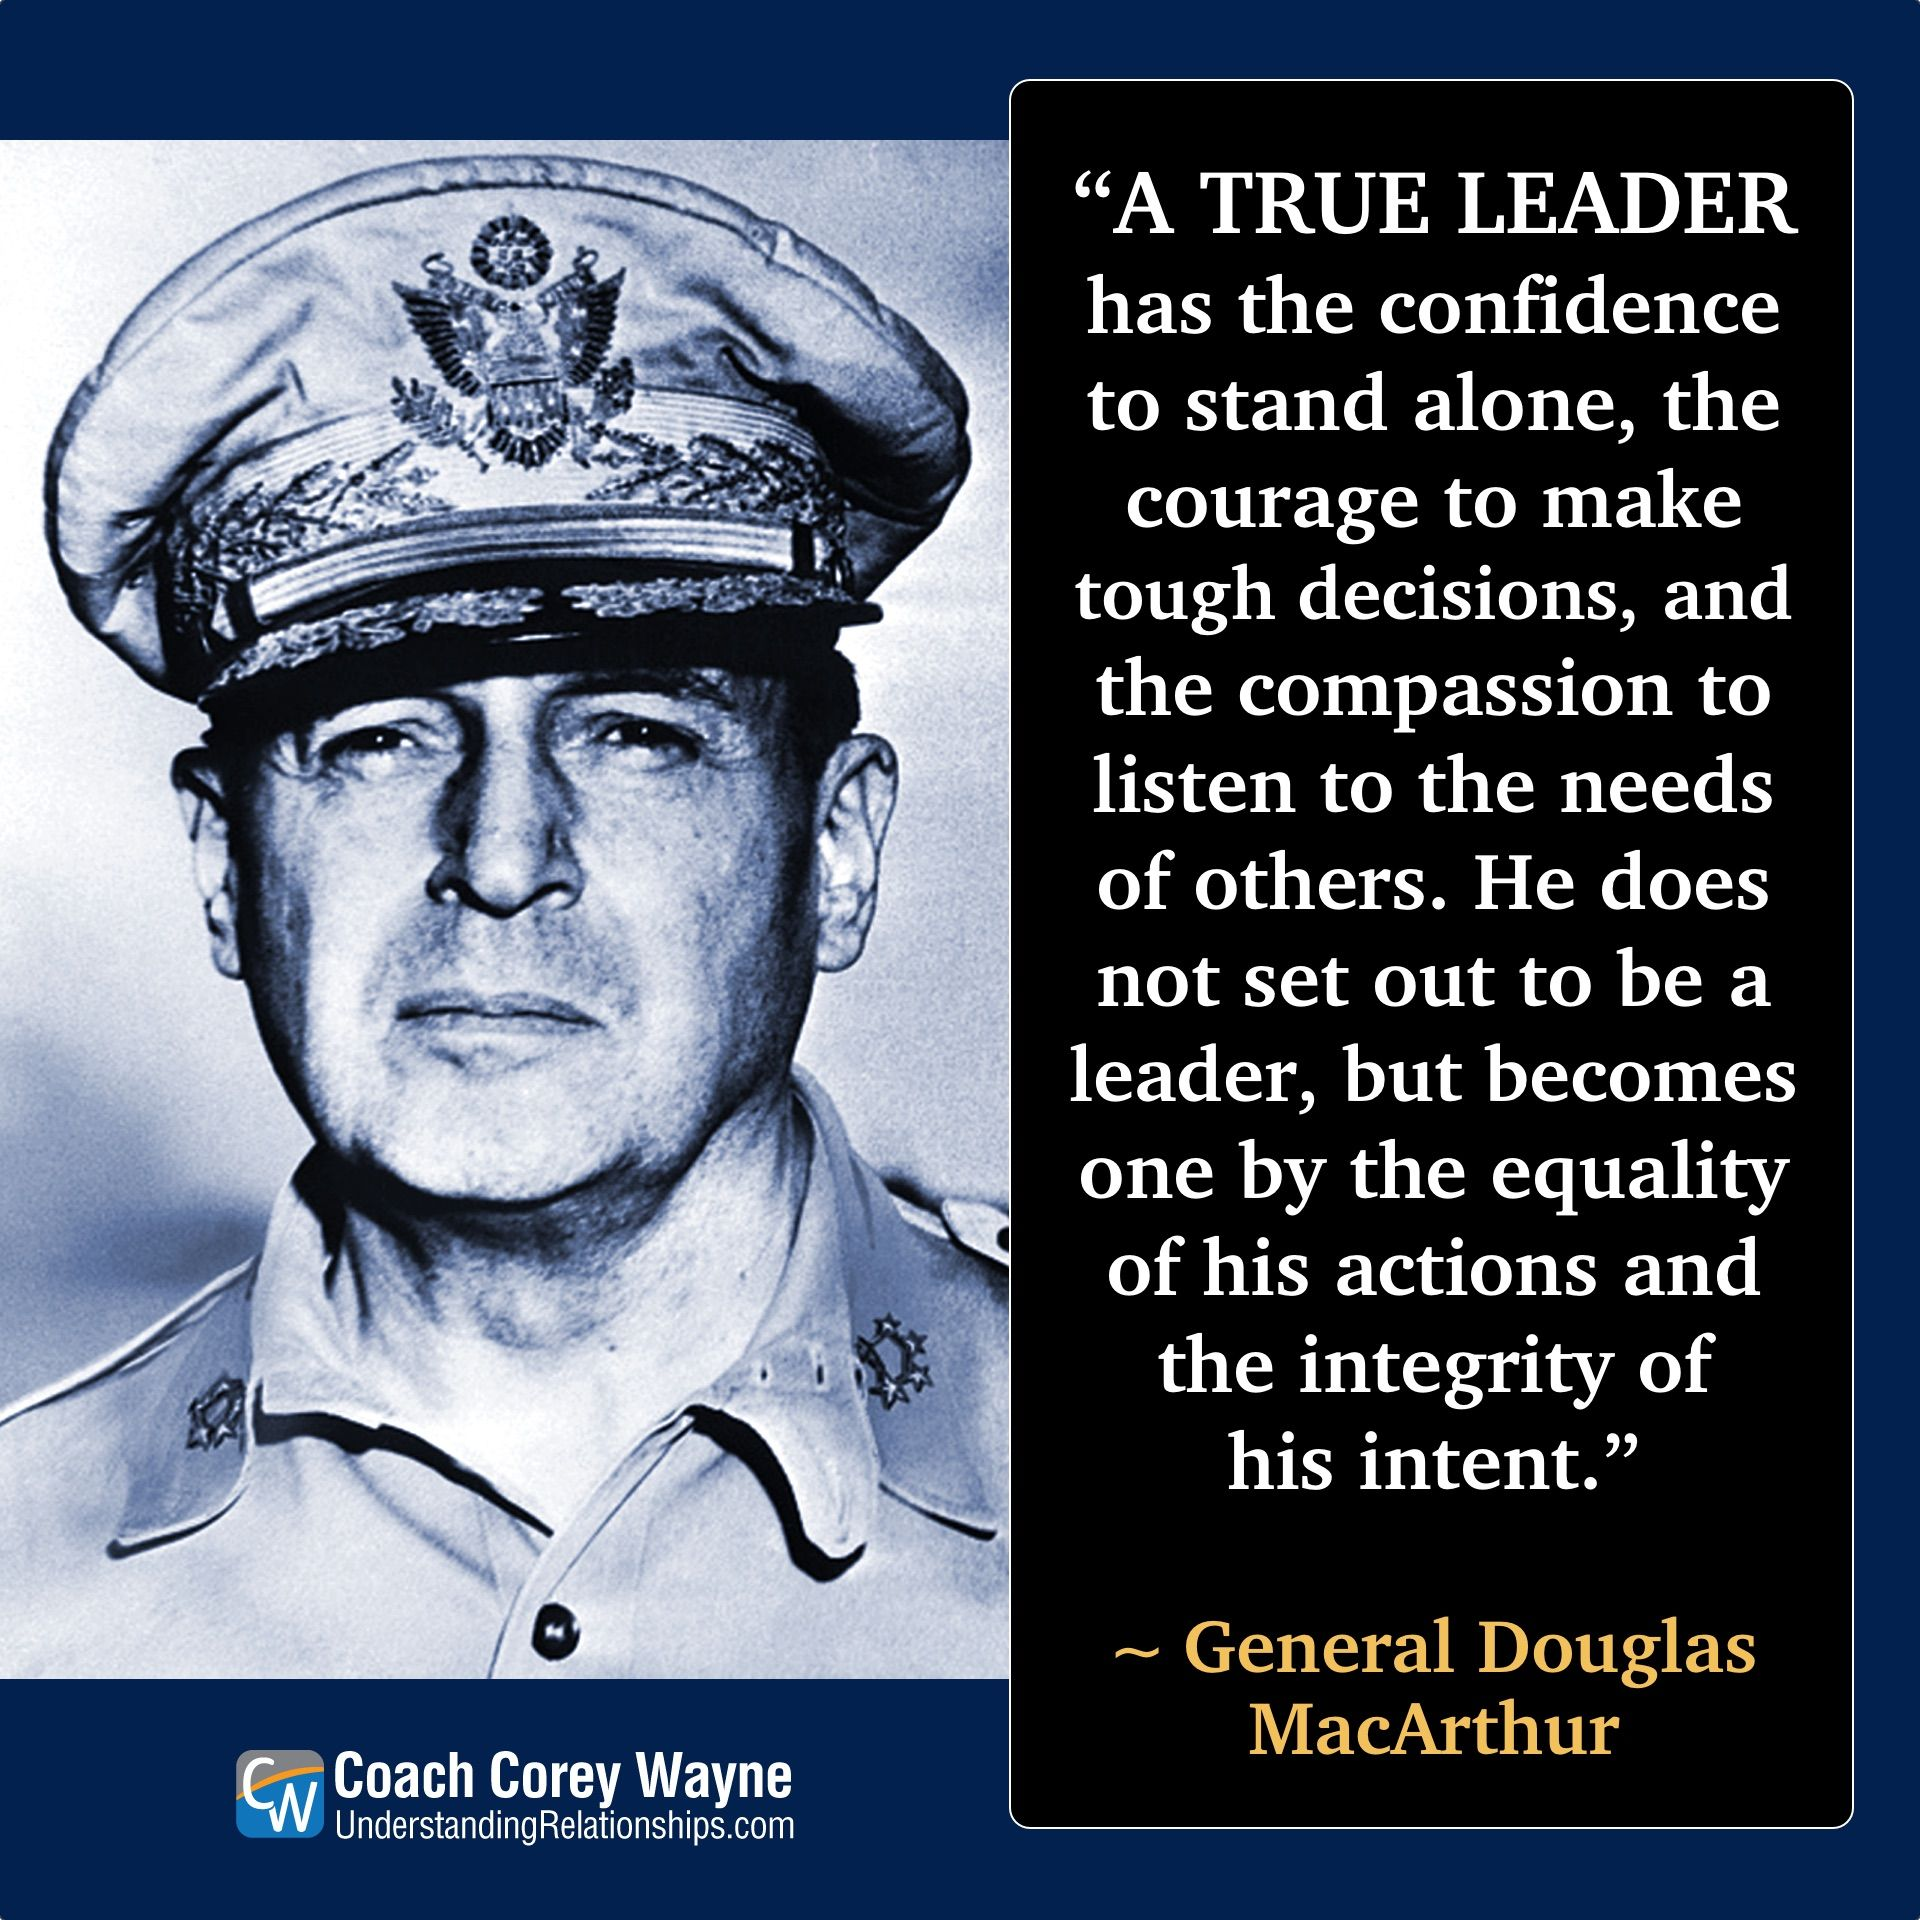 douglasmacarthur #american #army #general #military #wwii #leadership  #confidence #integrity #decisions #courage #comp… | Leadership, Douglas  macarthur, Self help